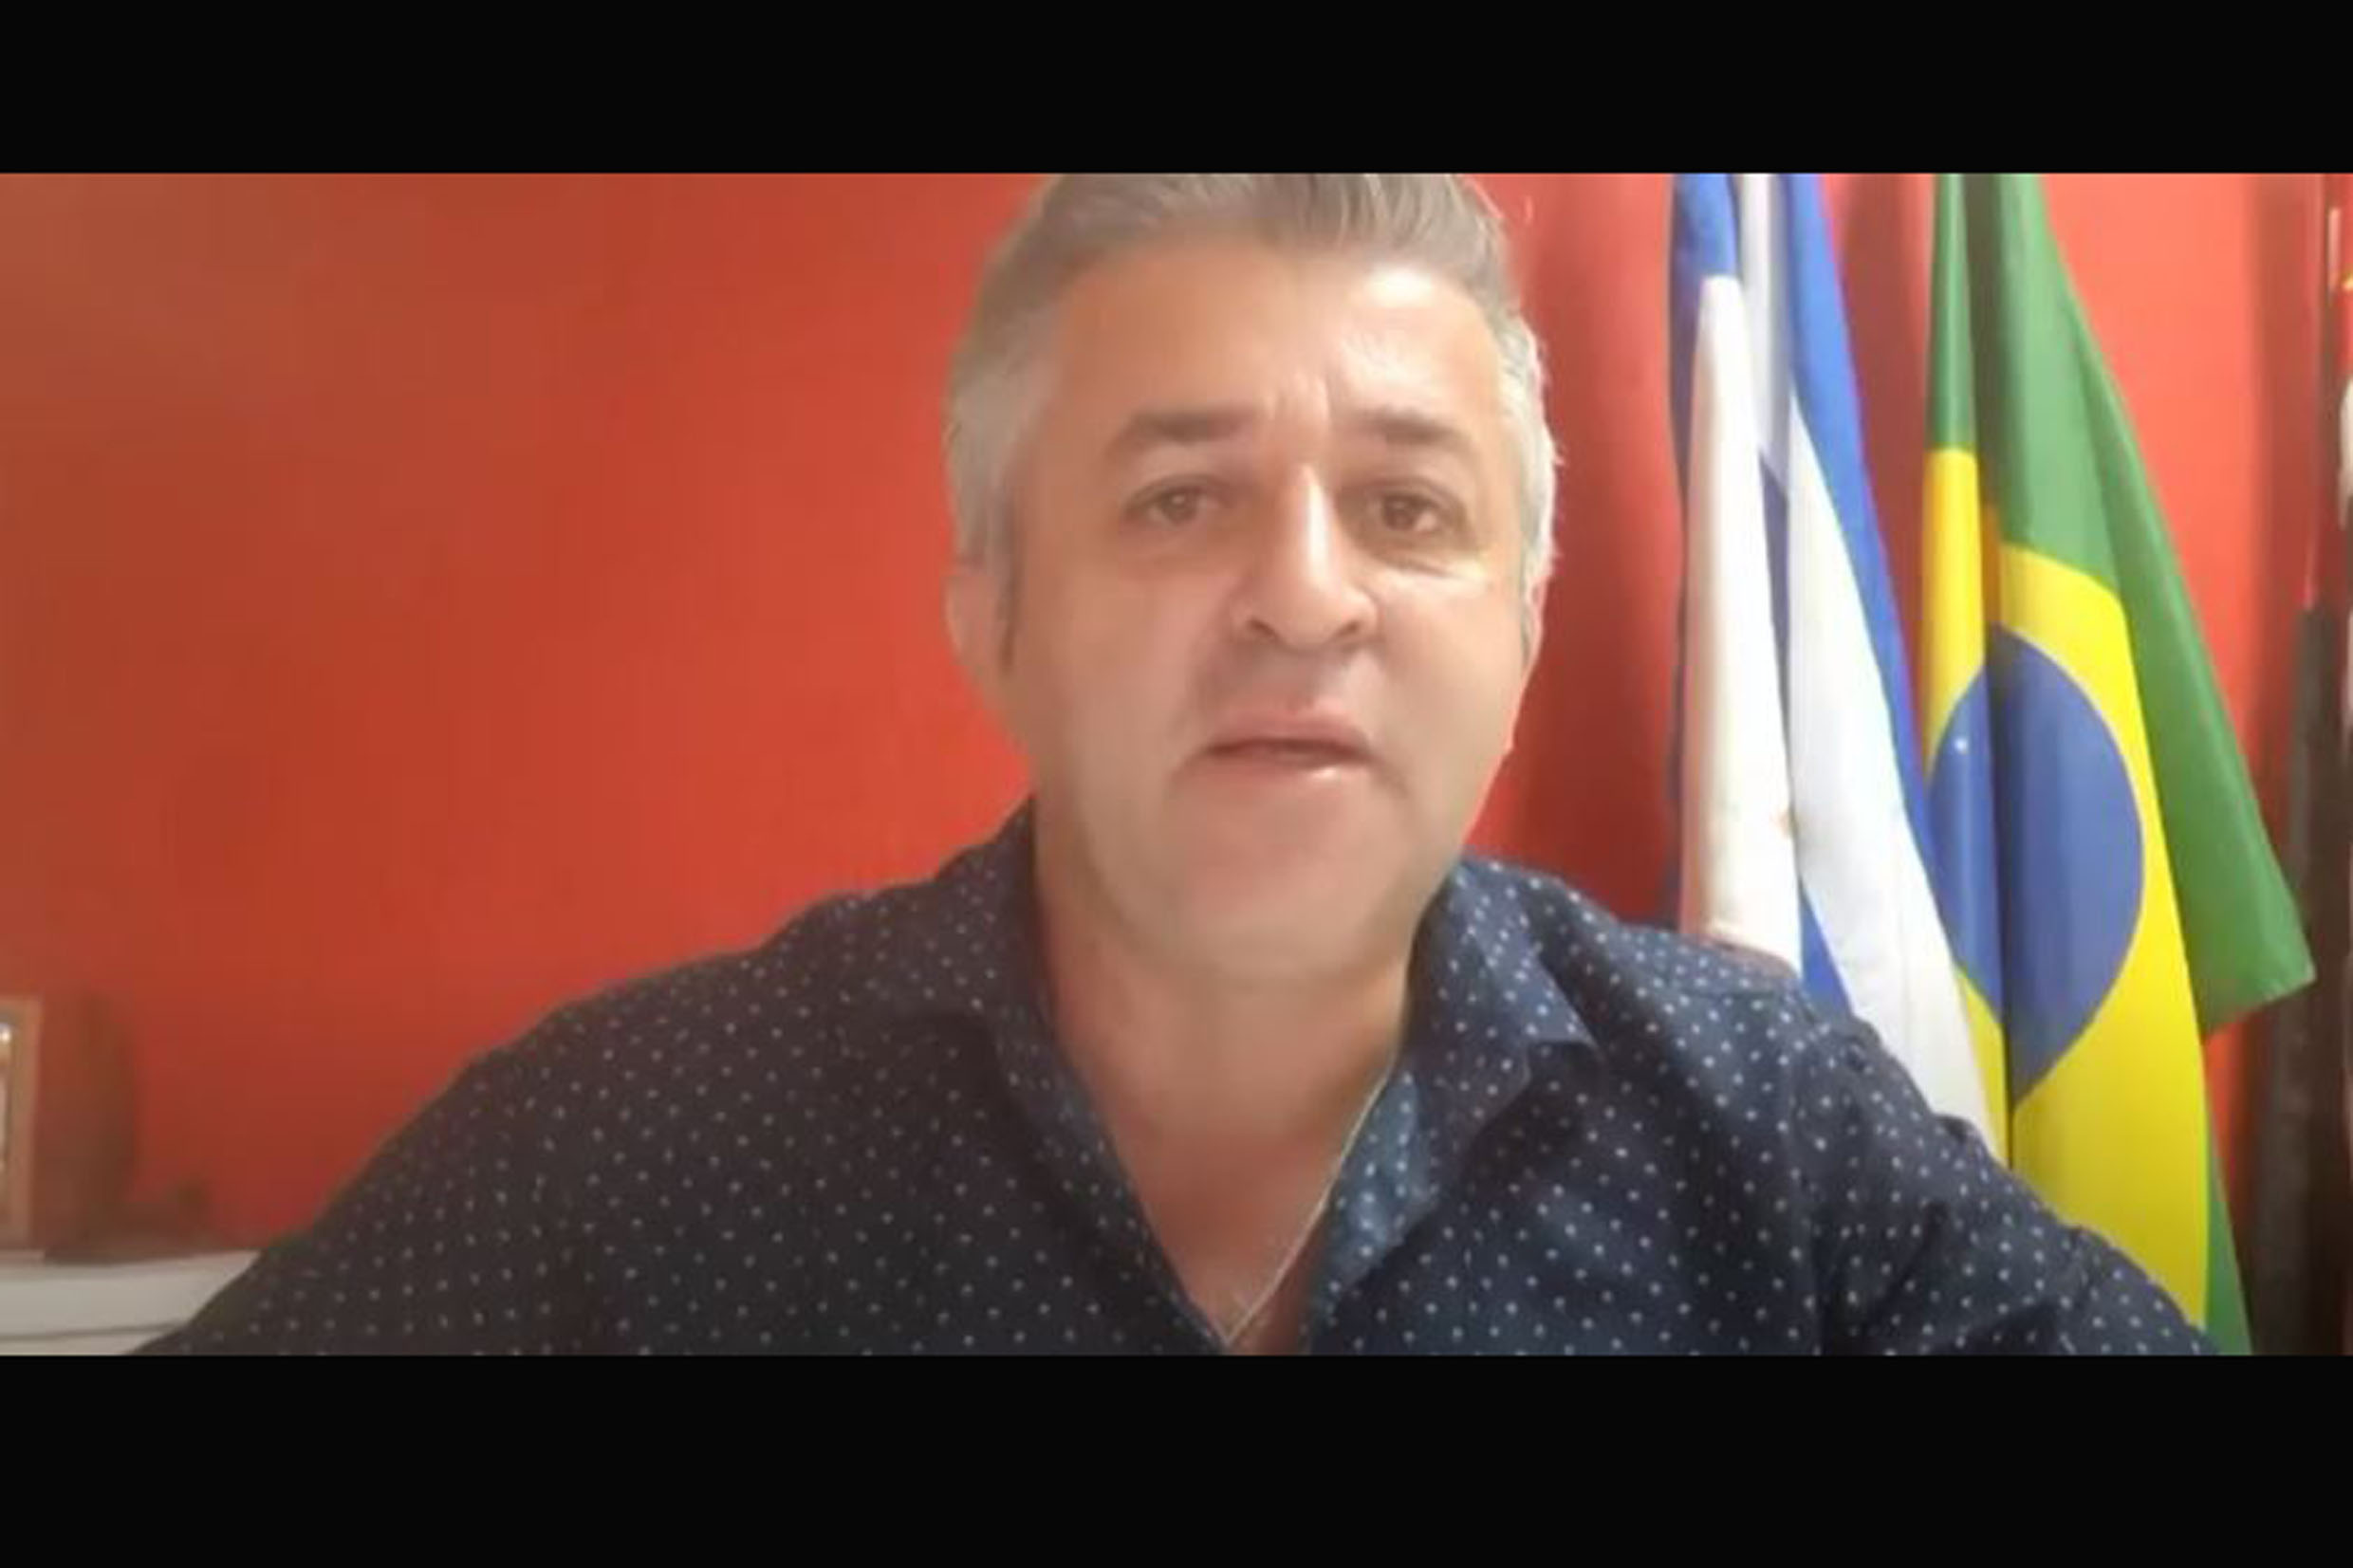 Orlando Vitoriano<a style='float:right' href='https://www3.al.sp.gov.br/repositorio/noticia/N-06-2021/fg269763.jpg' target=_blank><img src='/_img/material-file-download-white.png' width='14px' alt='Clique para baixar a imagem'></a>